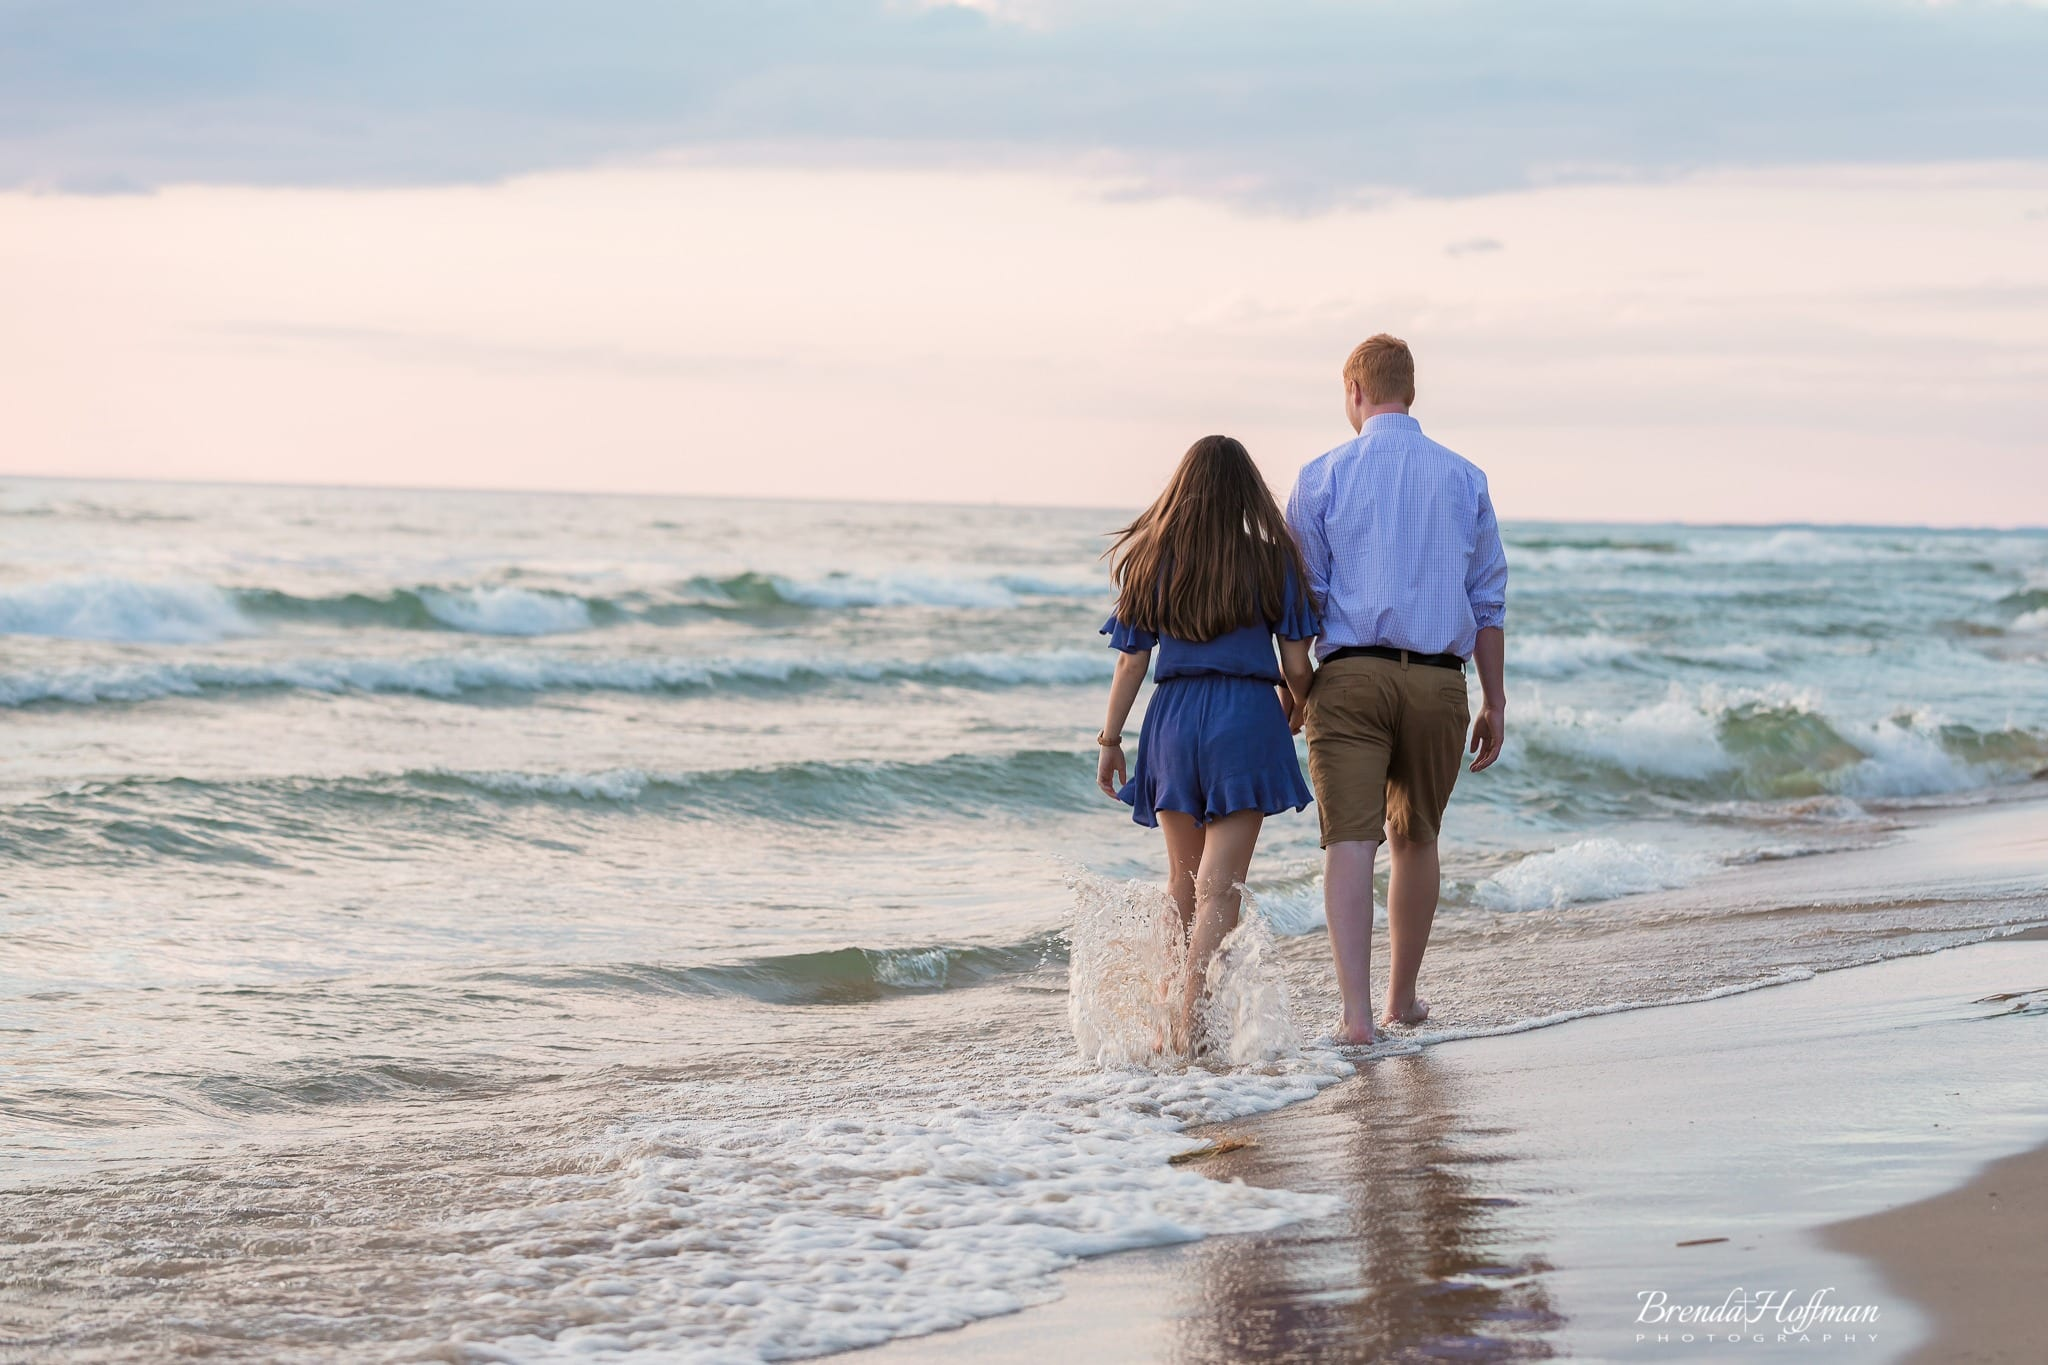 Beach-Sunset-Engagement-Session (8 of 14)